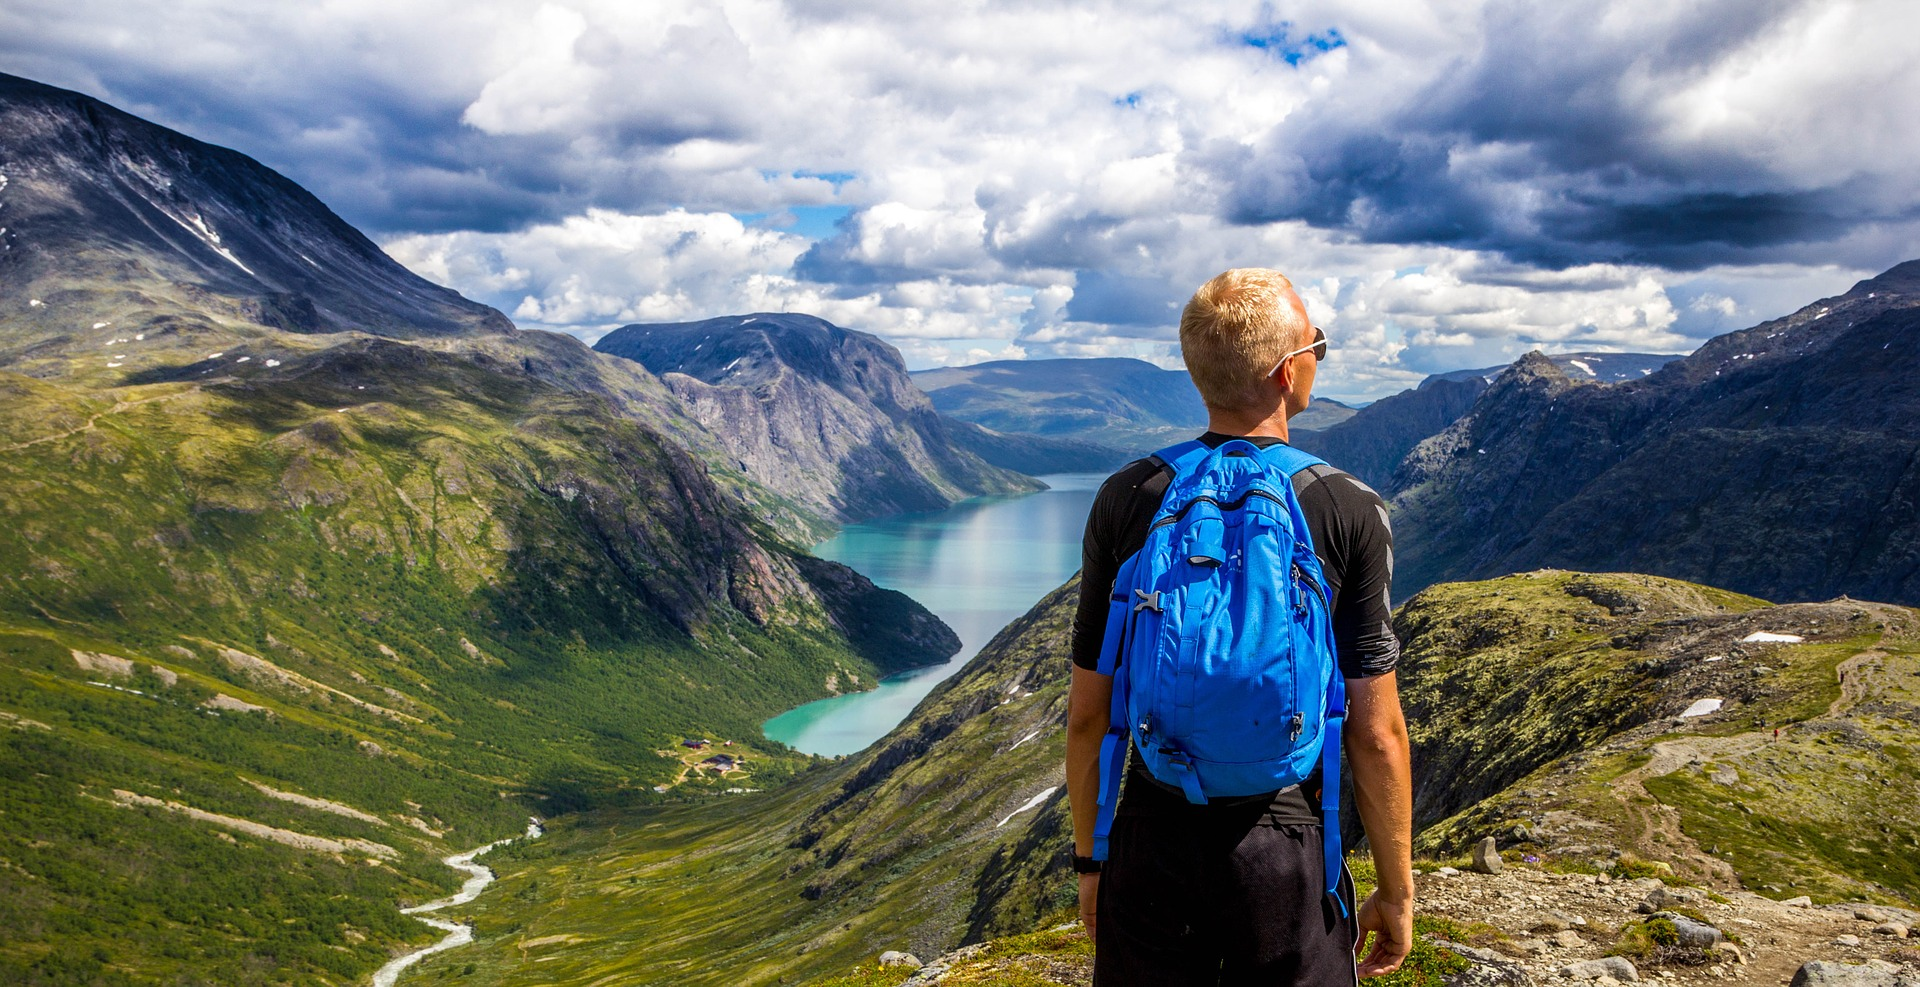 norway_fjords_mountain_outdoor